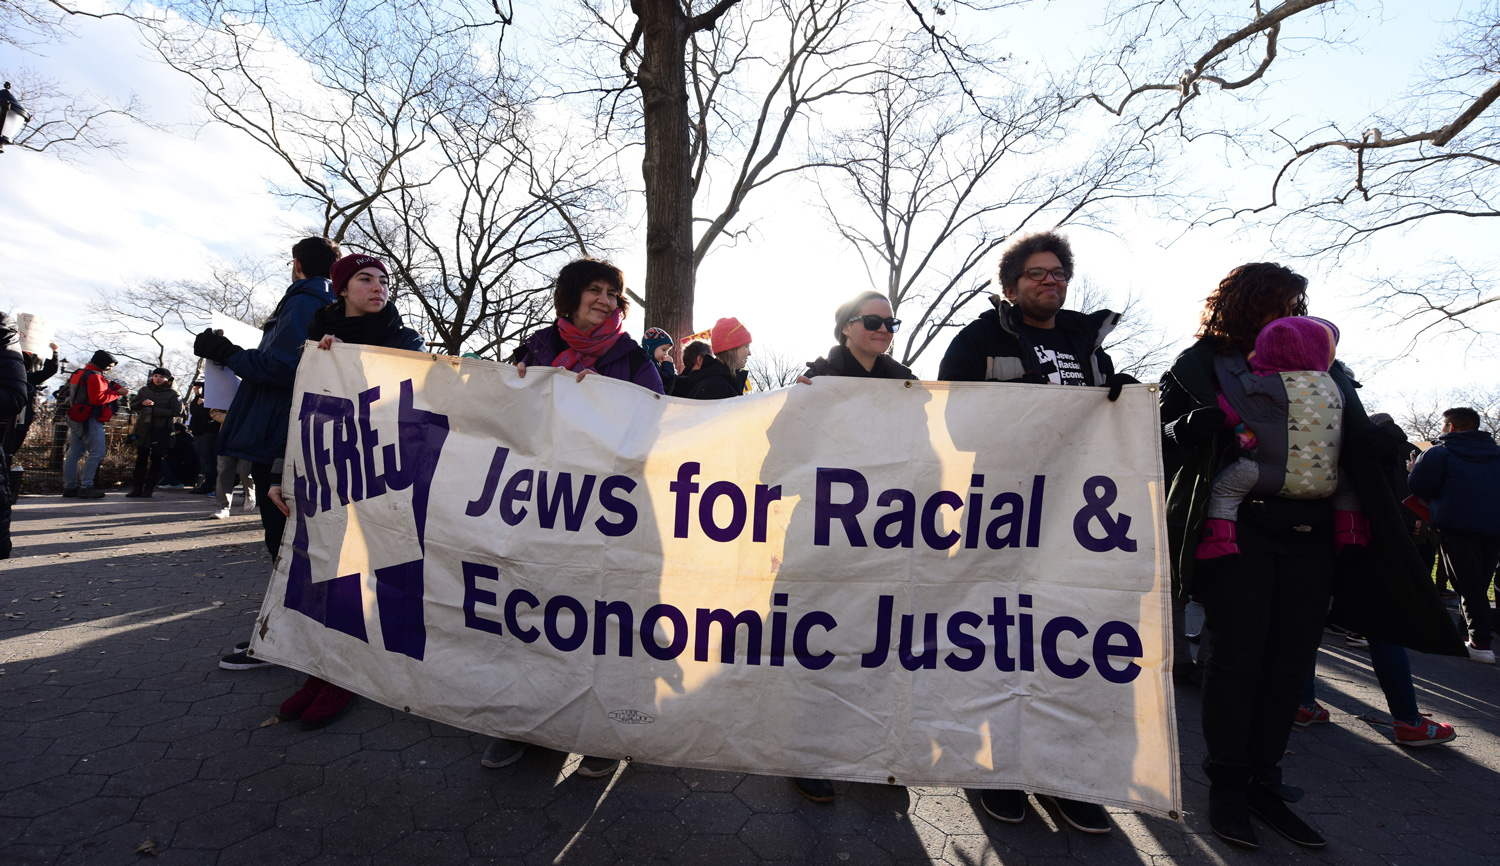 Jews for Racial & Economic Justice in January 2017. Andy Katz/Pacific Press/LightRocket via Getty Images.